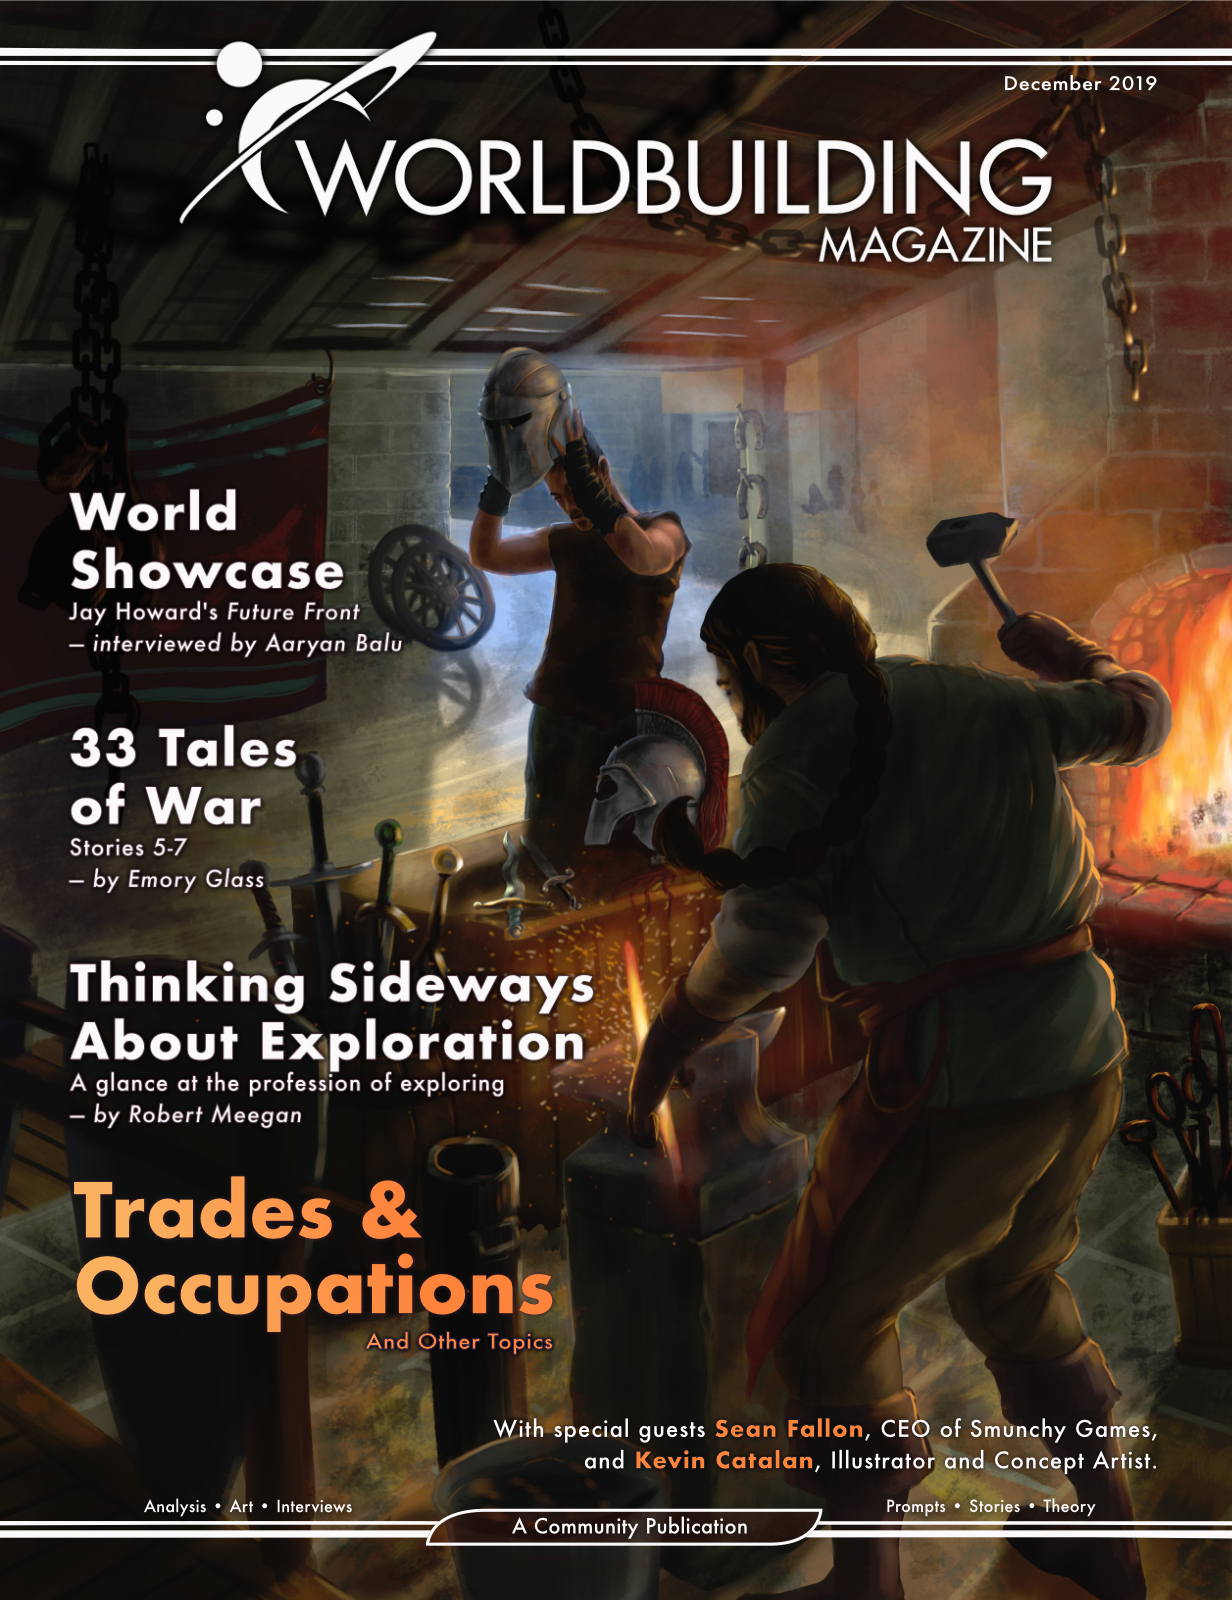 Trades & Occupations Cover